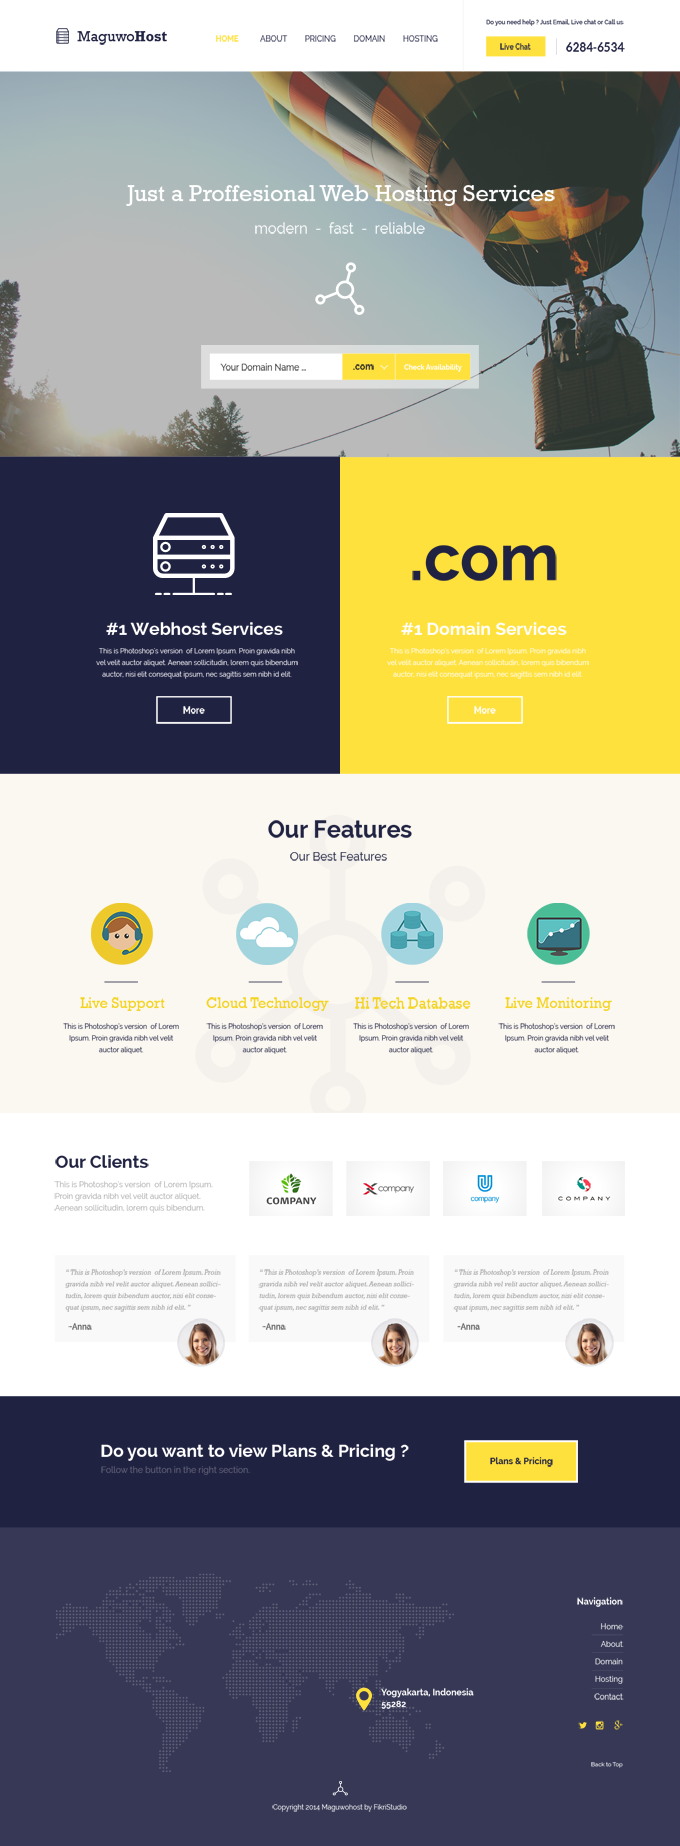 Maguwohost-Hosting Template